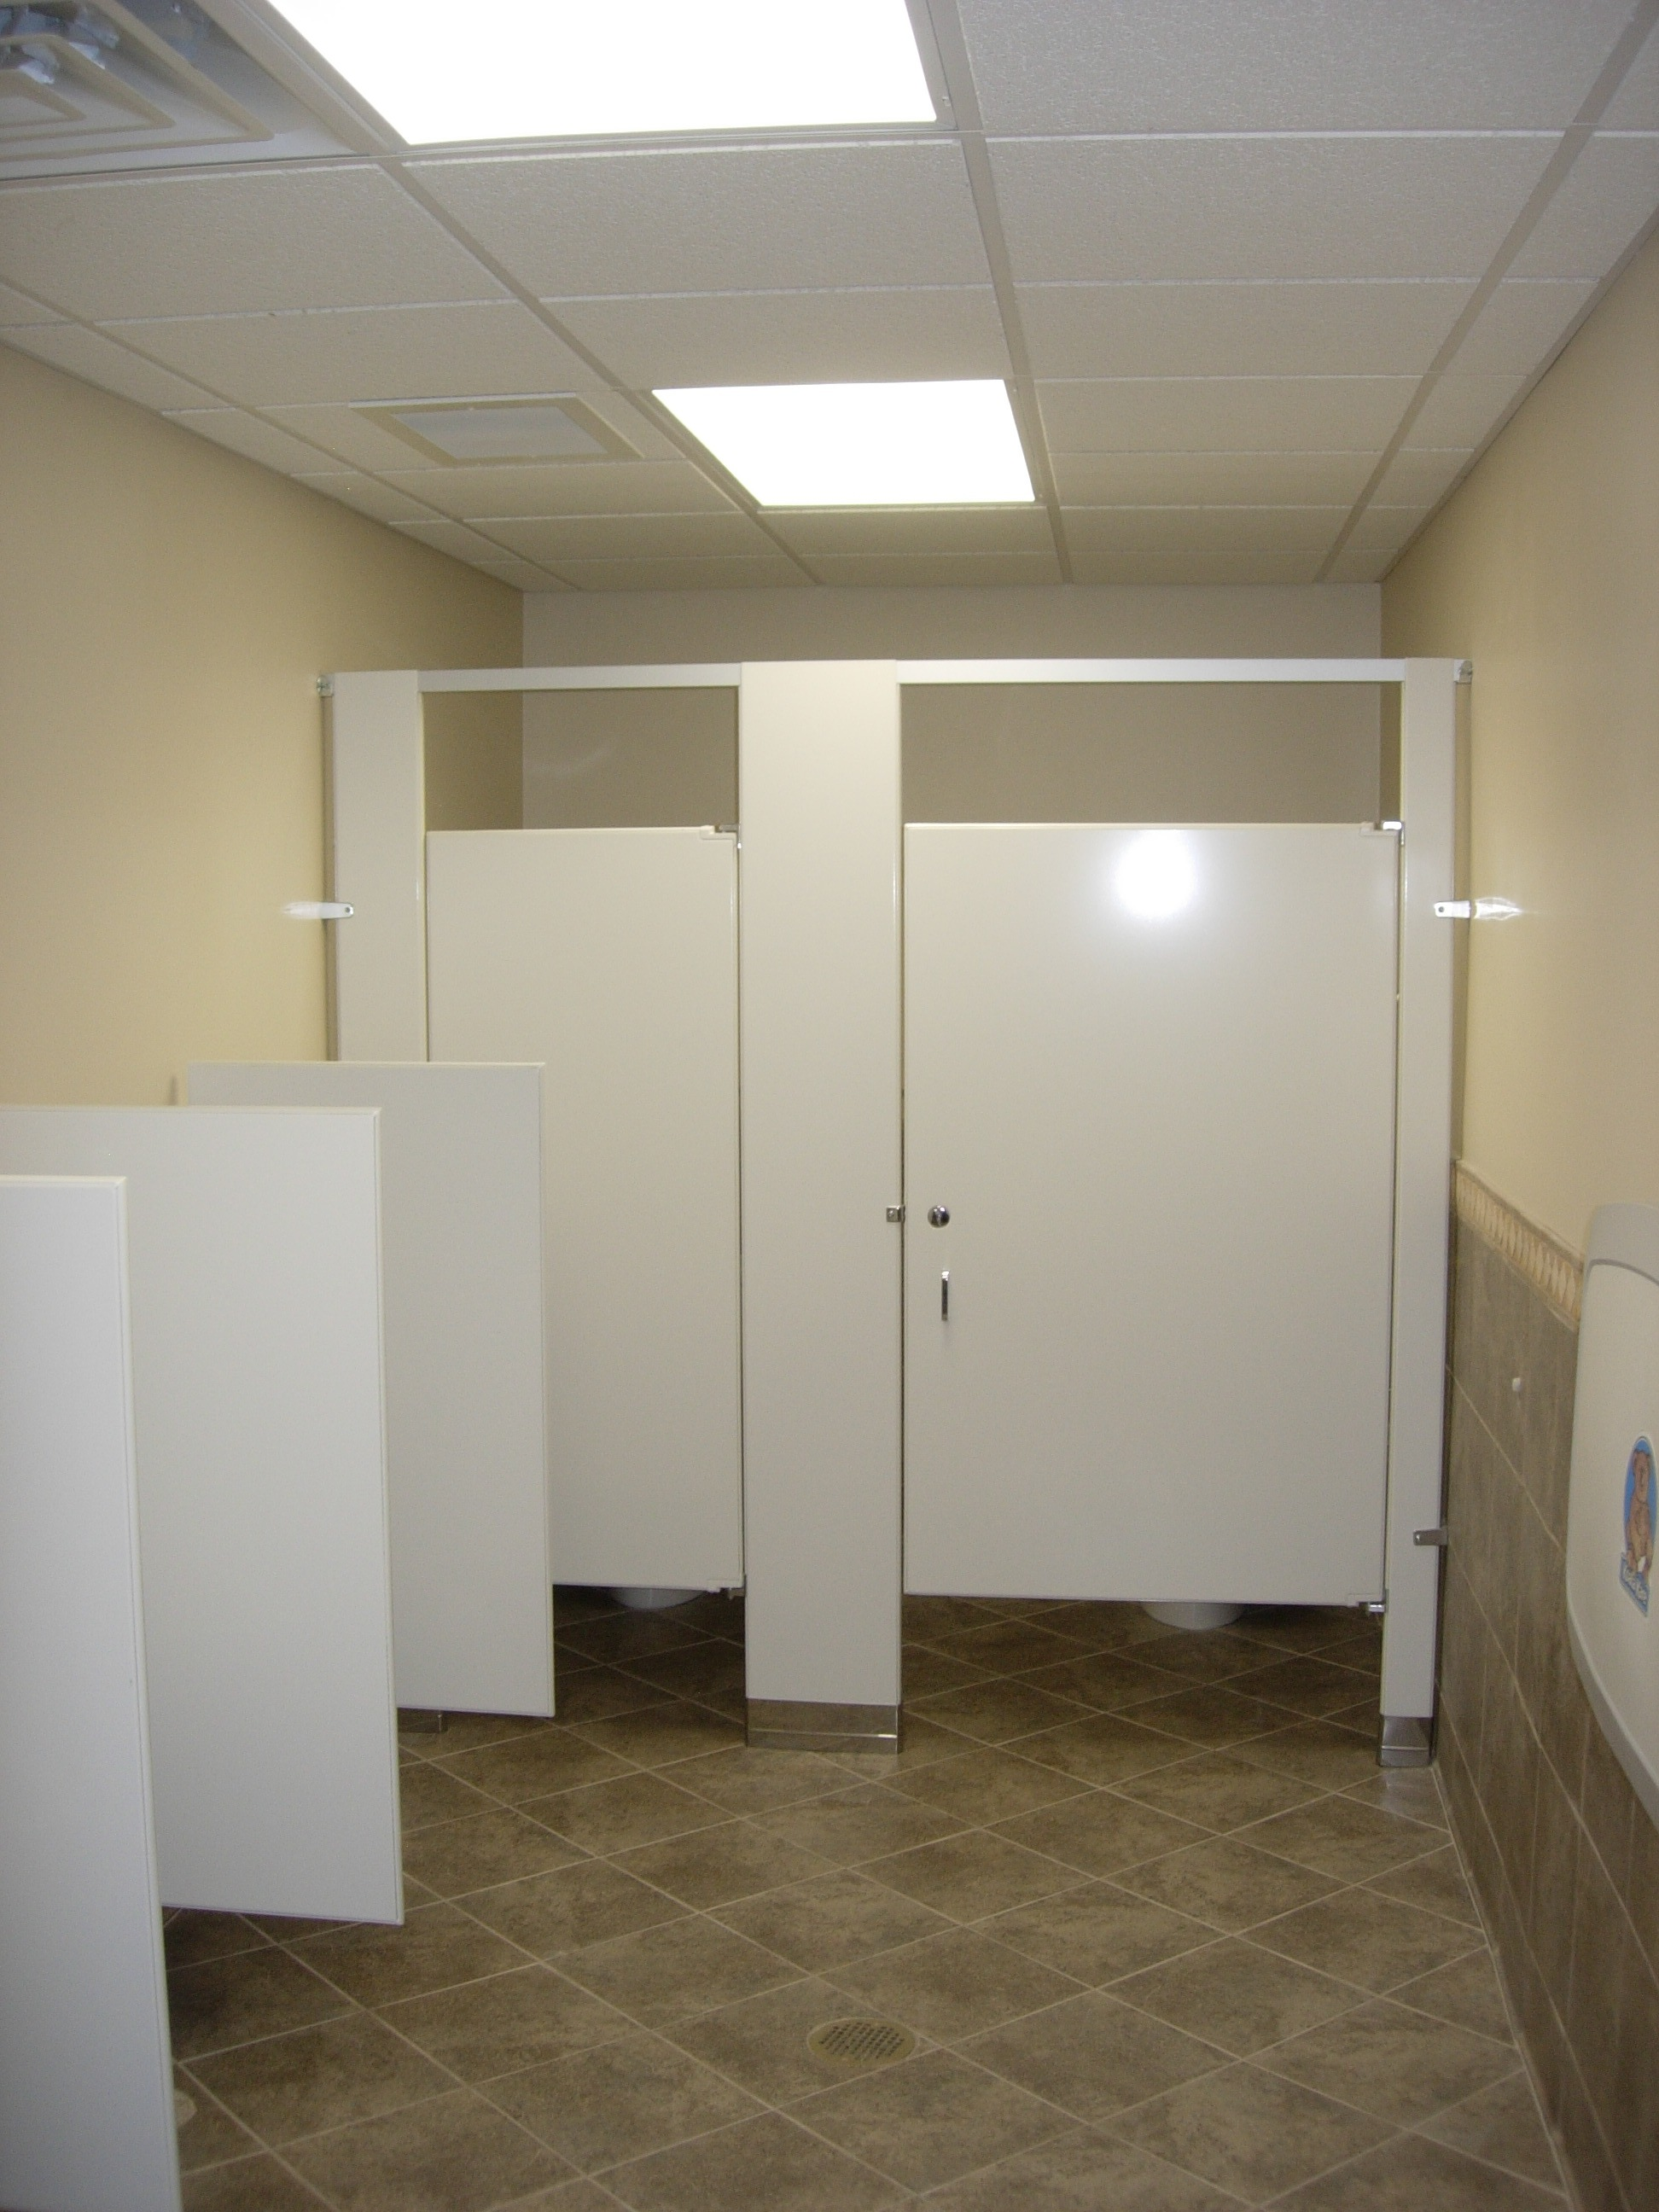 Grace Baptist Church Restroom Remodel  Easterday Construction